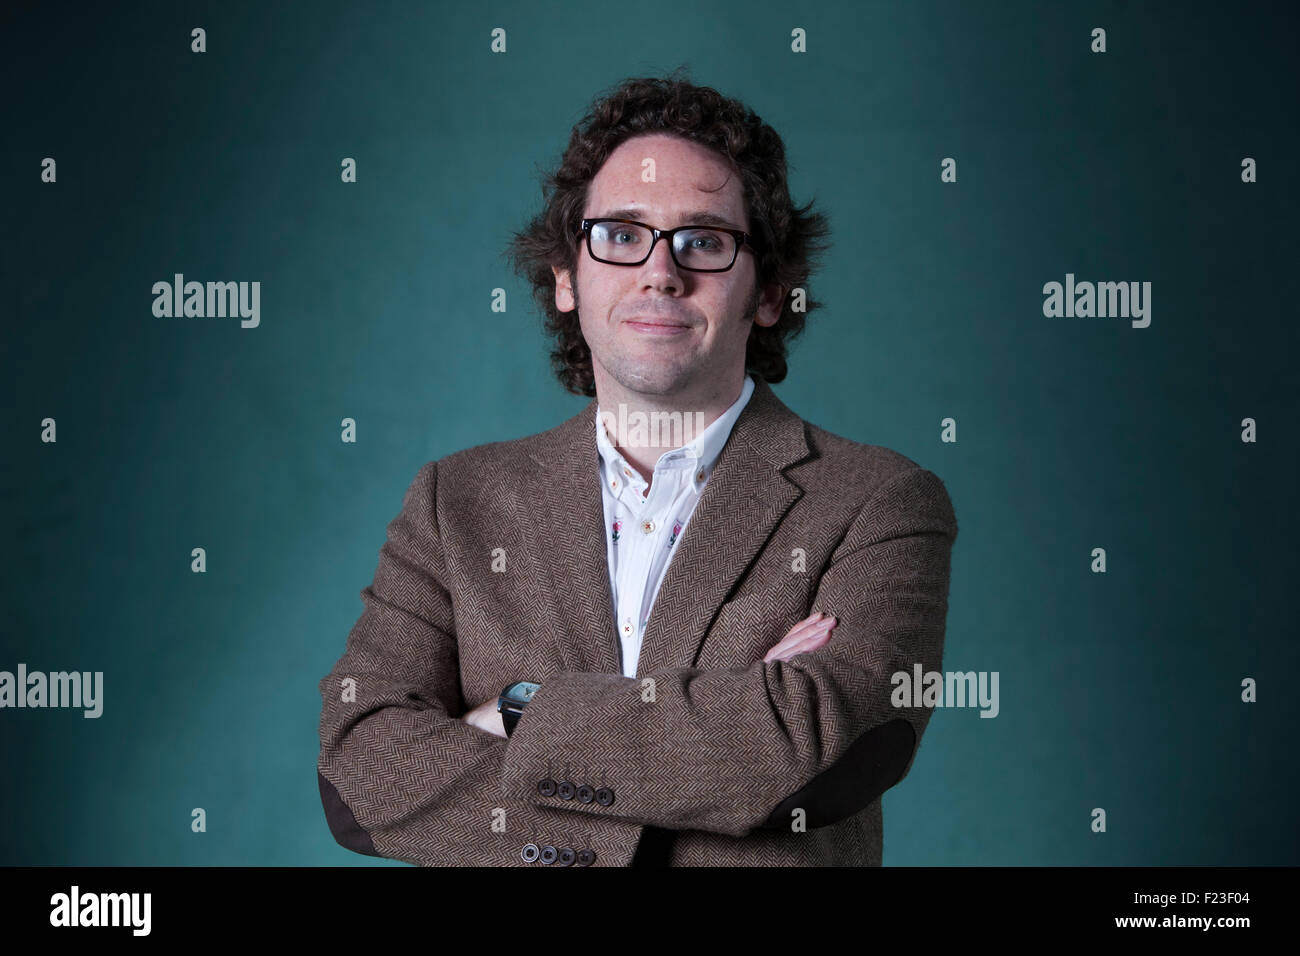 Jonathan Edwards, the Welsh poet, at the Edinburgh International Book Festival 2015. Edinburgh, Scotland. 21st August - Stock Image